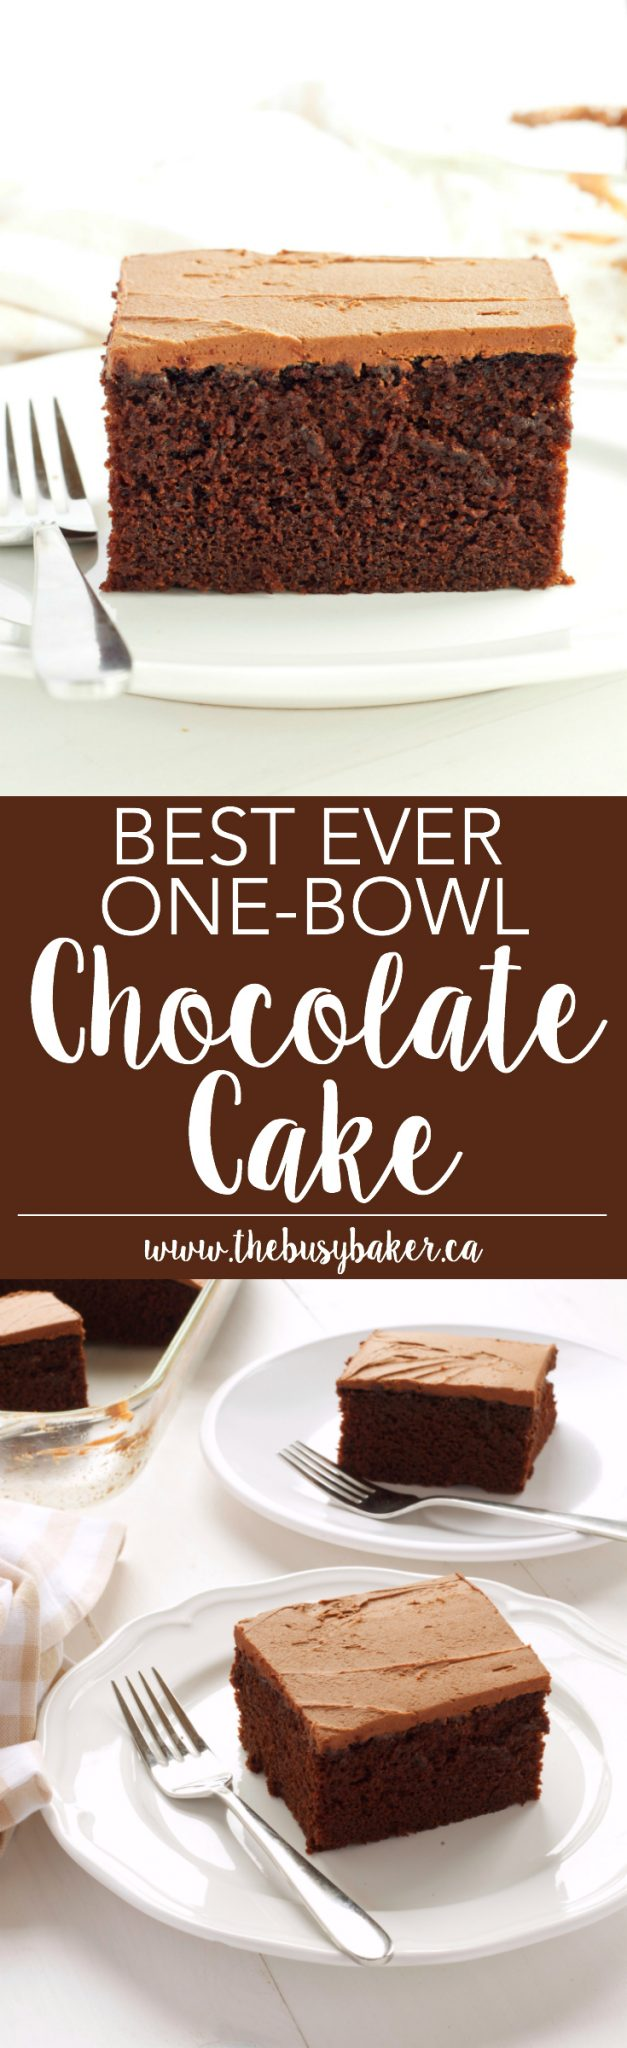 This Best Ever One Bowl Chocolate Cake is the 'holy grail' of chocolate cakes! Recipe from thebusybaker.ca! via @busybakerblog